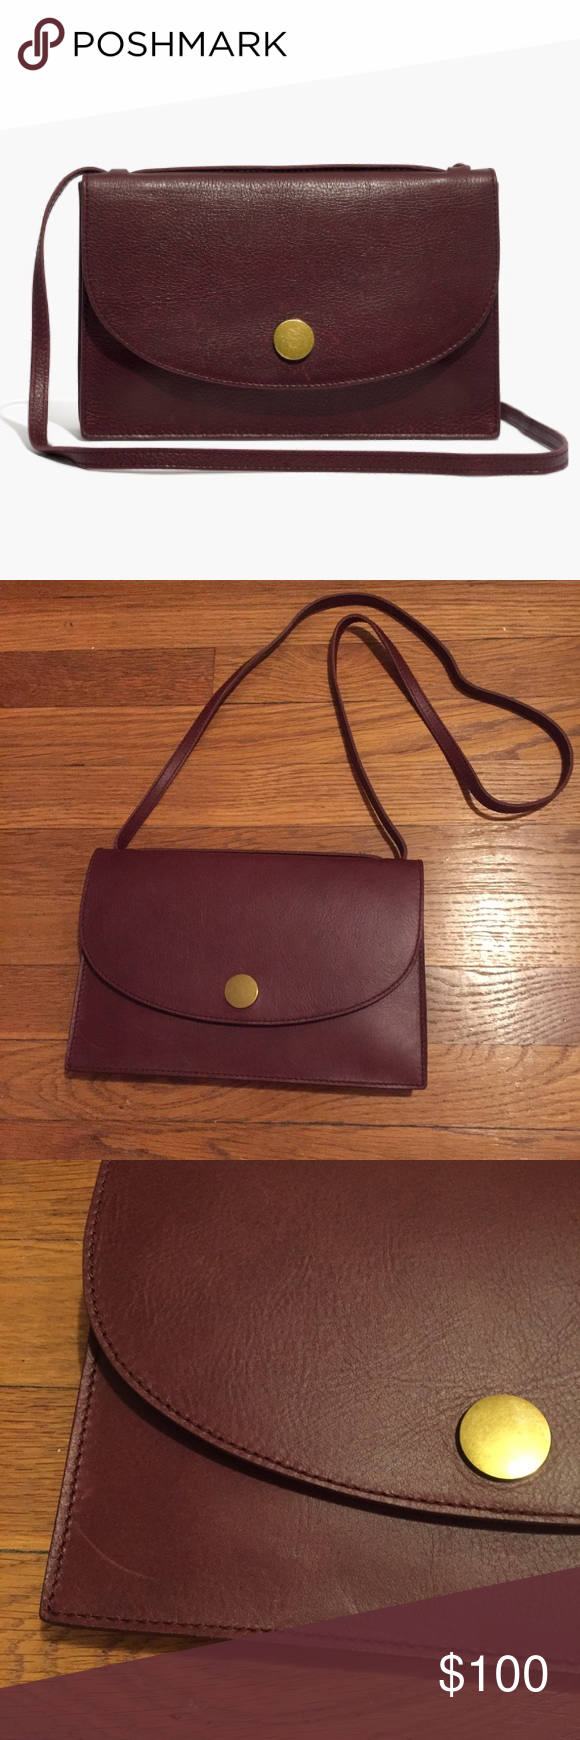 363762731edf Madewell Slim Convertible Bag in Dark Cabernet Brand new with tags slim  convertible bag from Madewell! In great condition and perfect for fall.